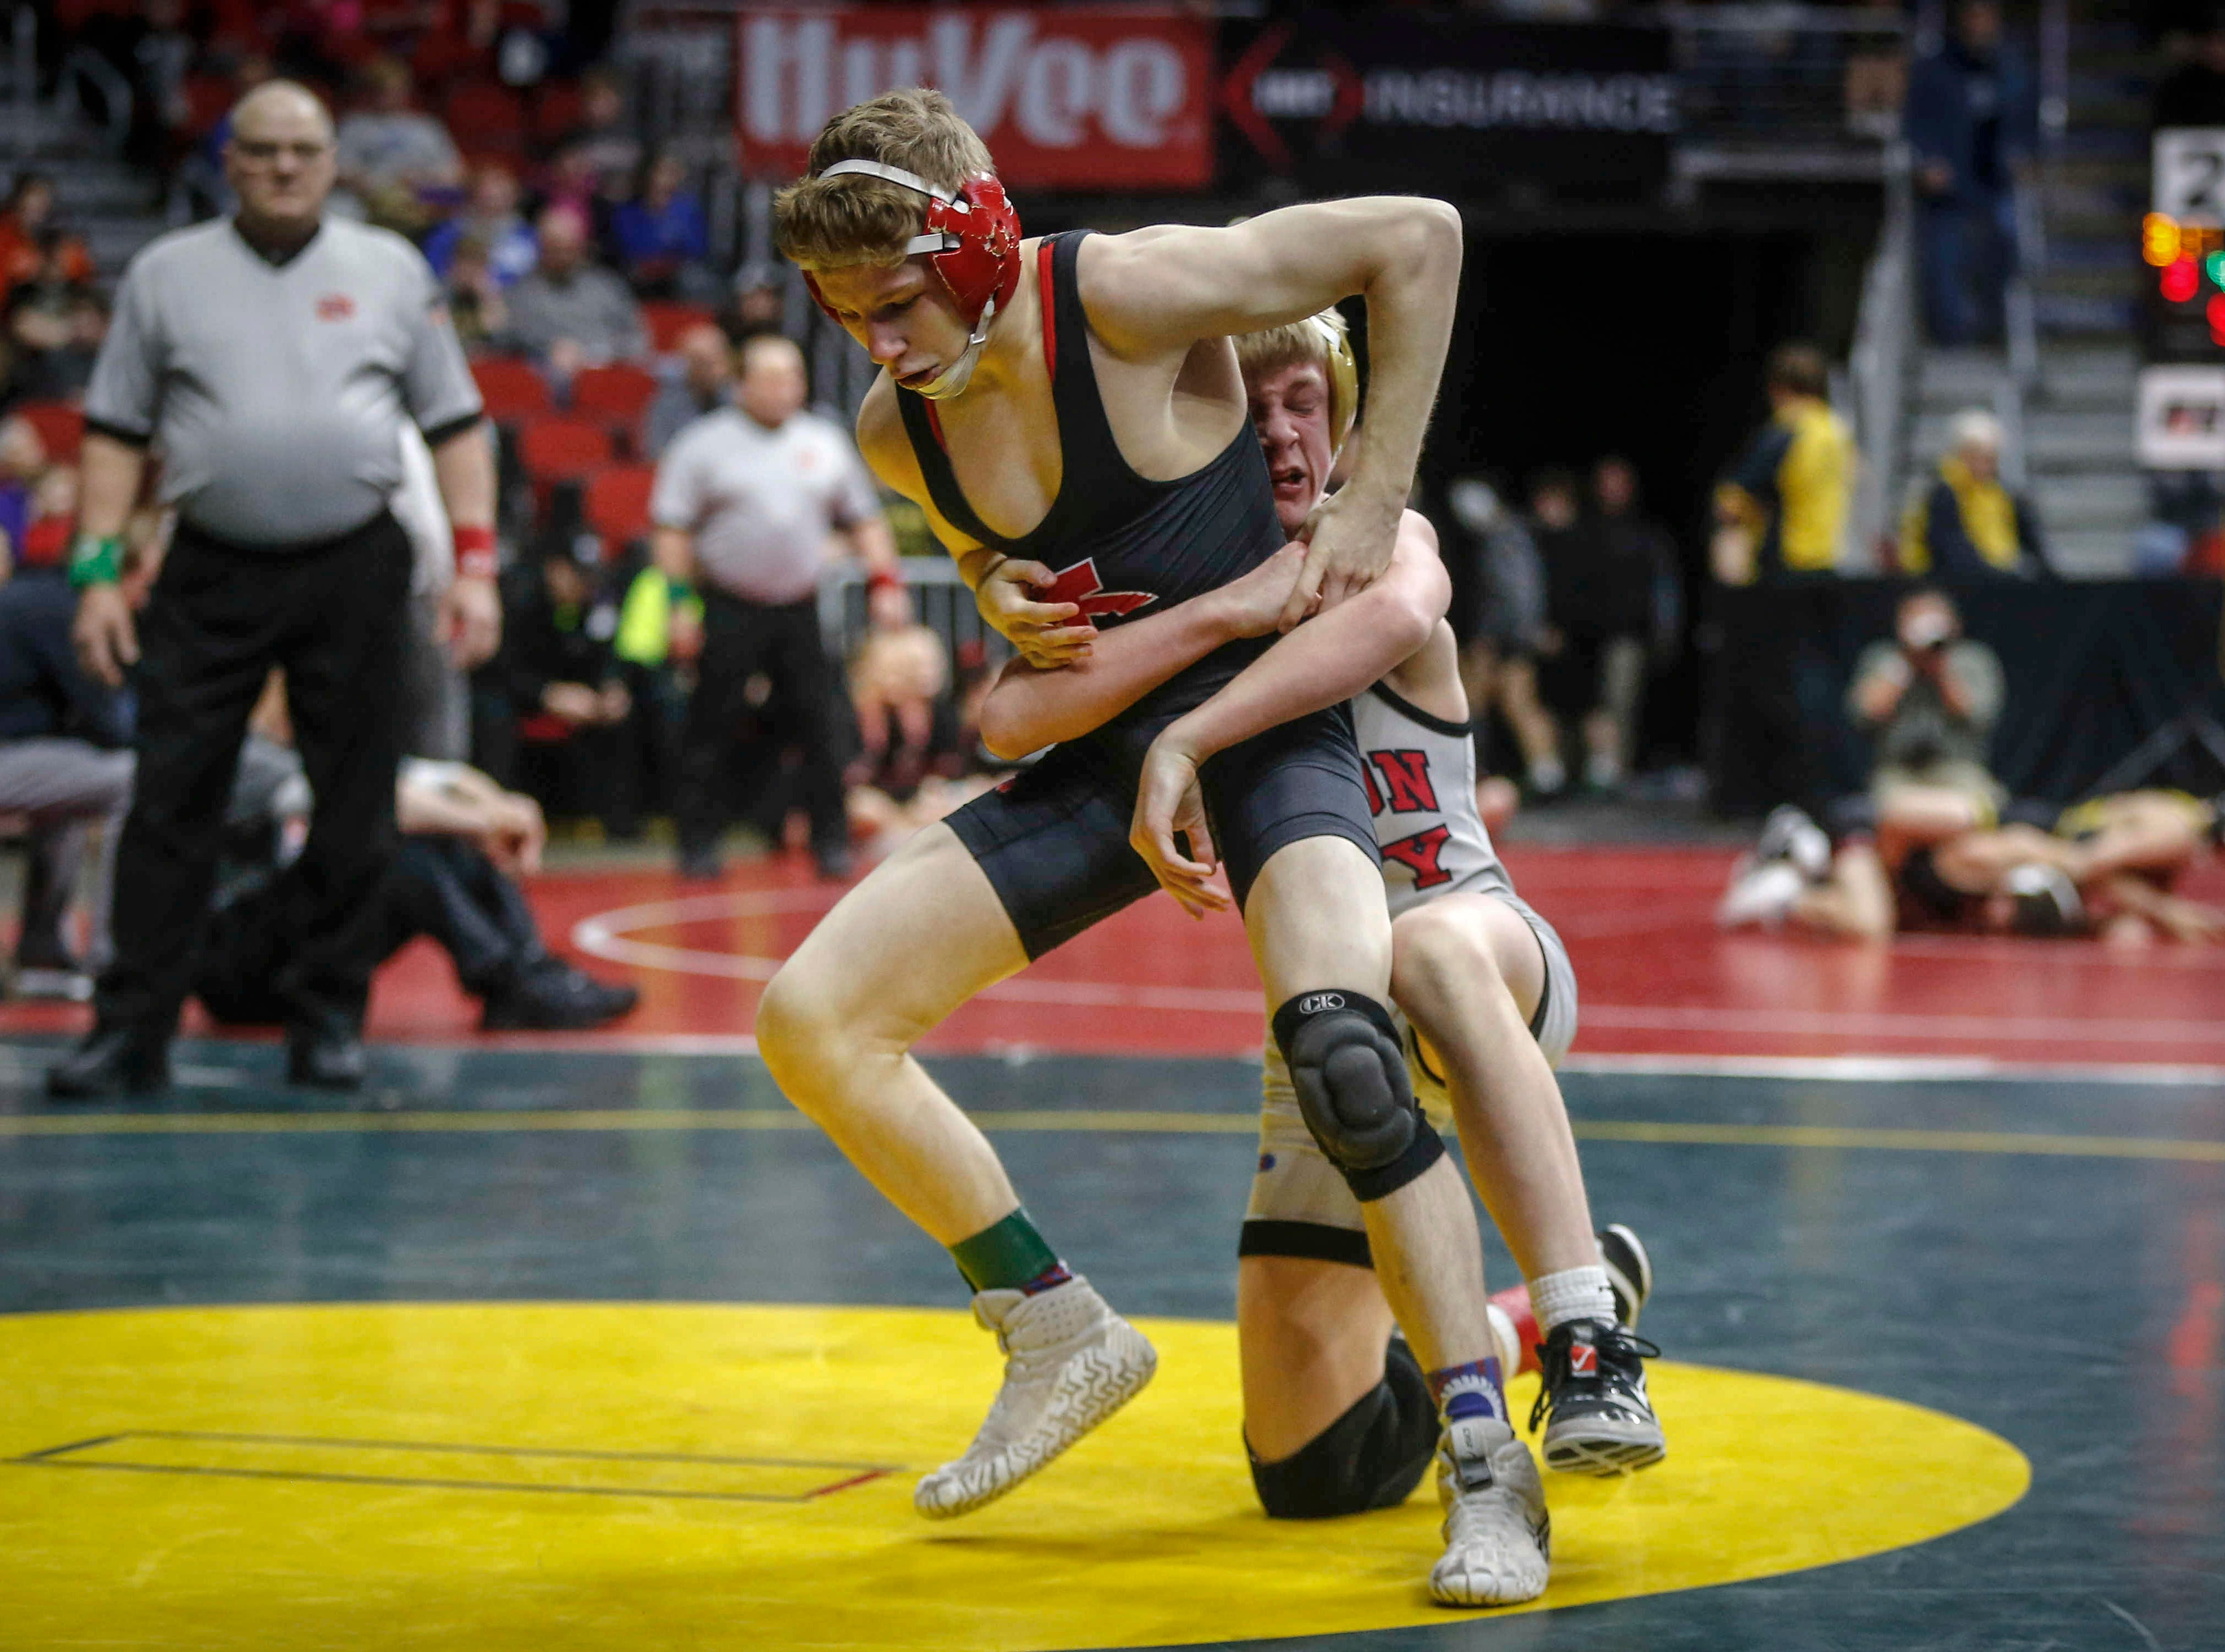 Iowa City High's Ethan Wood-Finley tries to break free from Mason City's Jace Rhodes in their match at 106 pounds during the state wrestling quarterfinals on Friday, Feb. 15, 2019, at Wells Fargo Arena in Des Moines.